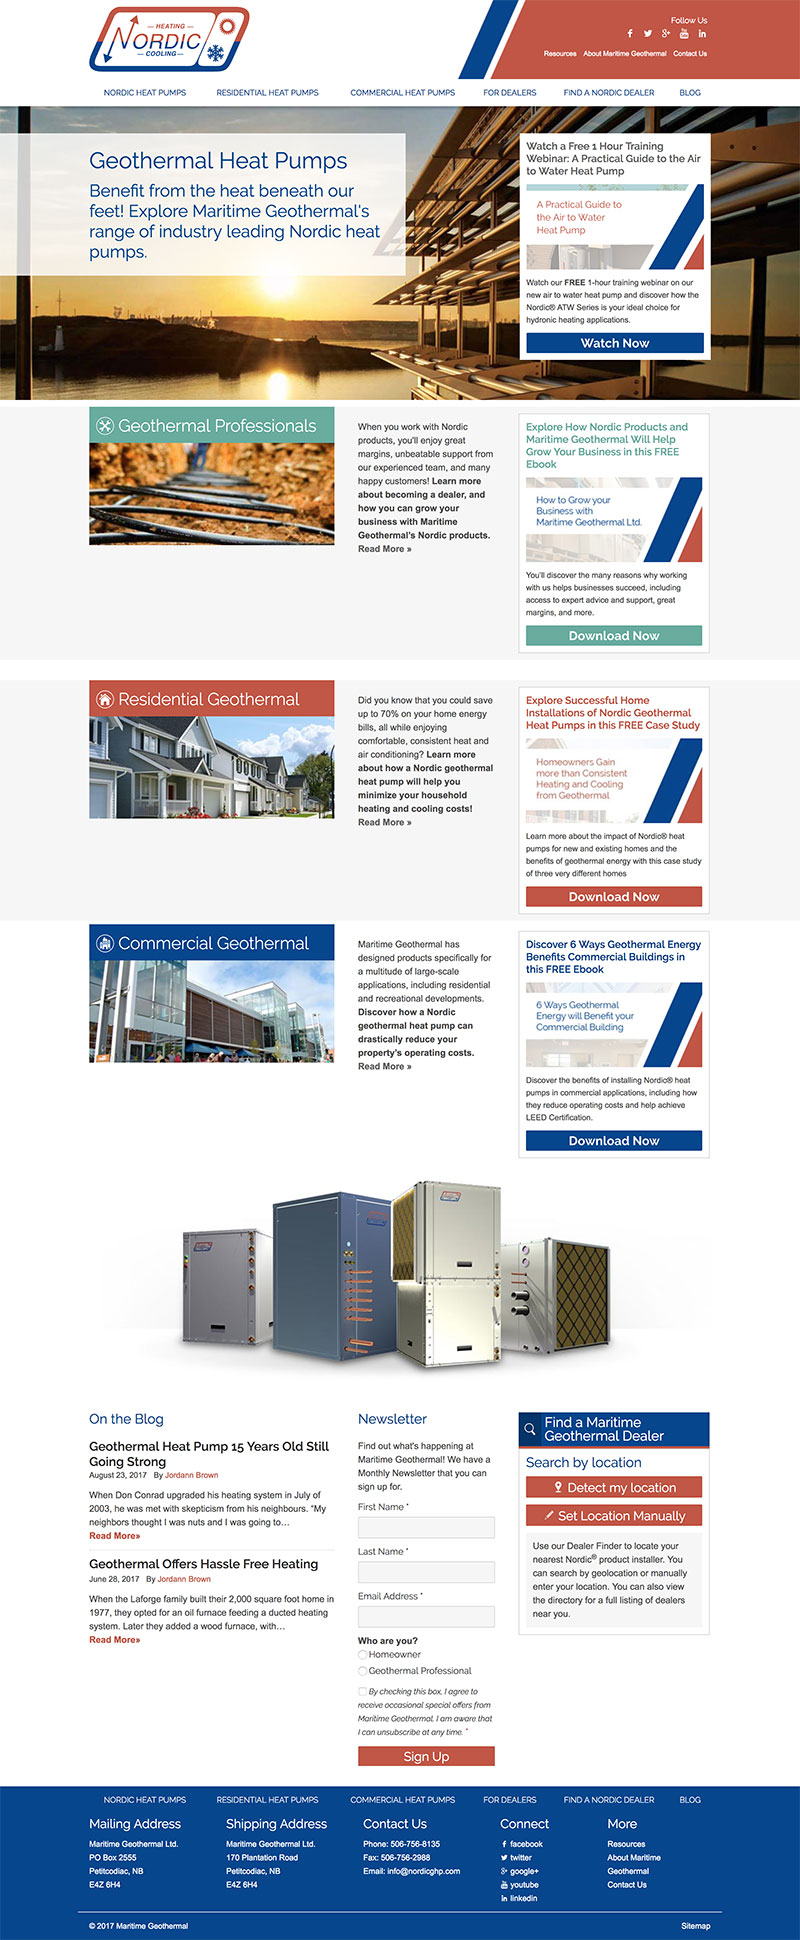 A screenshot of the full A screenshot of the full Maritime Geothermal homepage homepage